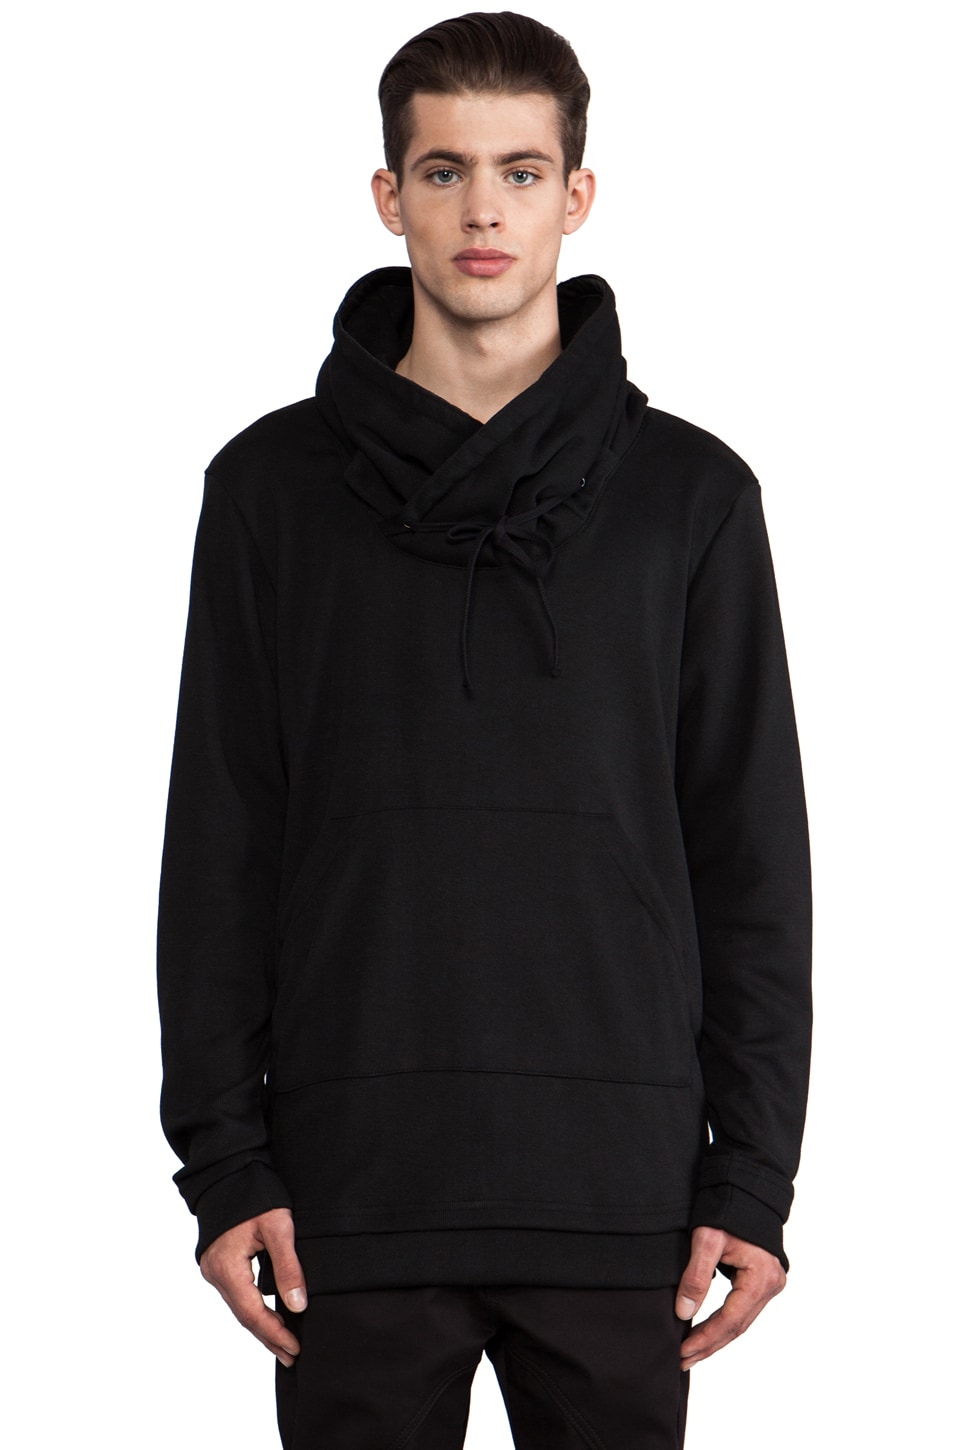 B:Scott Funnel Drawstring Pullover in Black